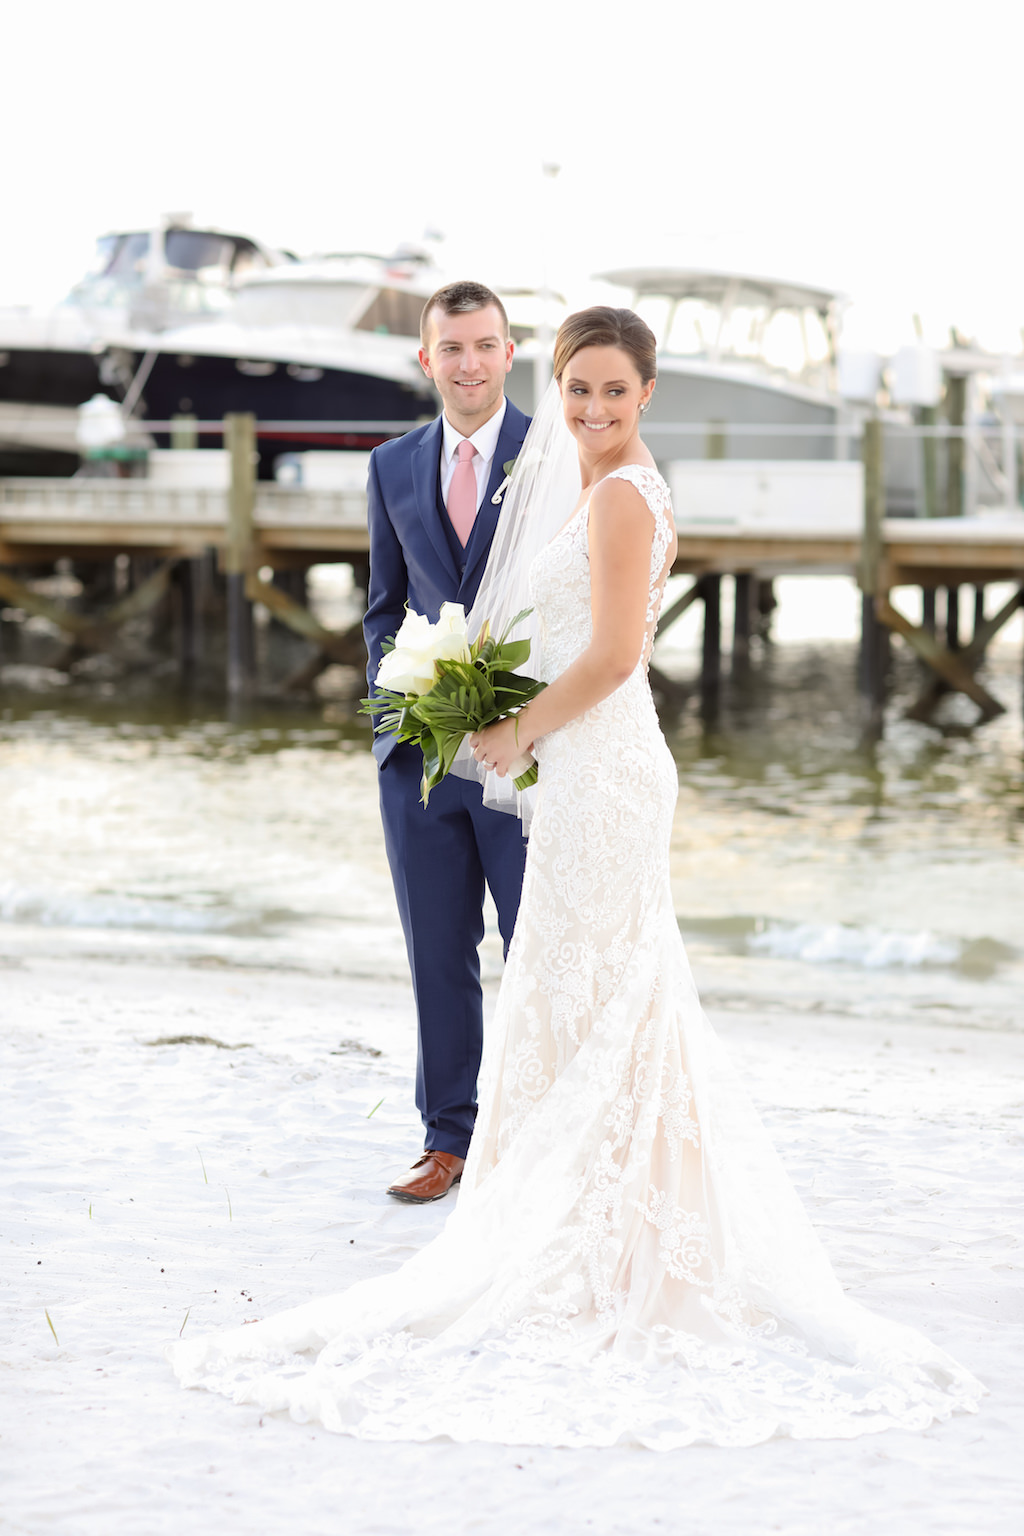 Waterfront Bride and Groom Wedding Portrait | Photographer LifeLong Photography Studios | St. Pete Beach Wedding Venue Isla Del Sol Yacht and Country Club